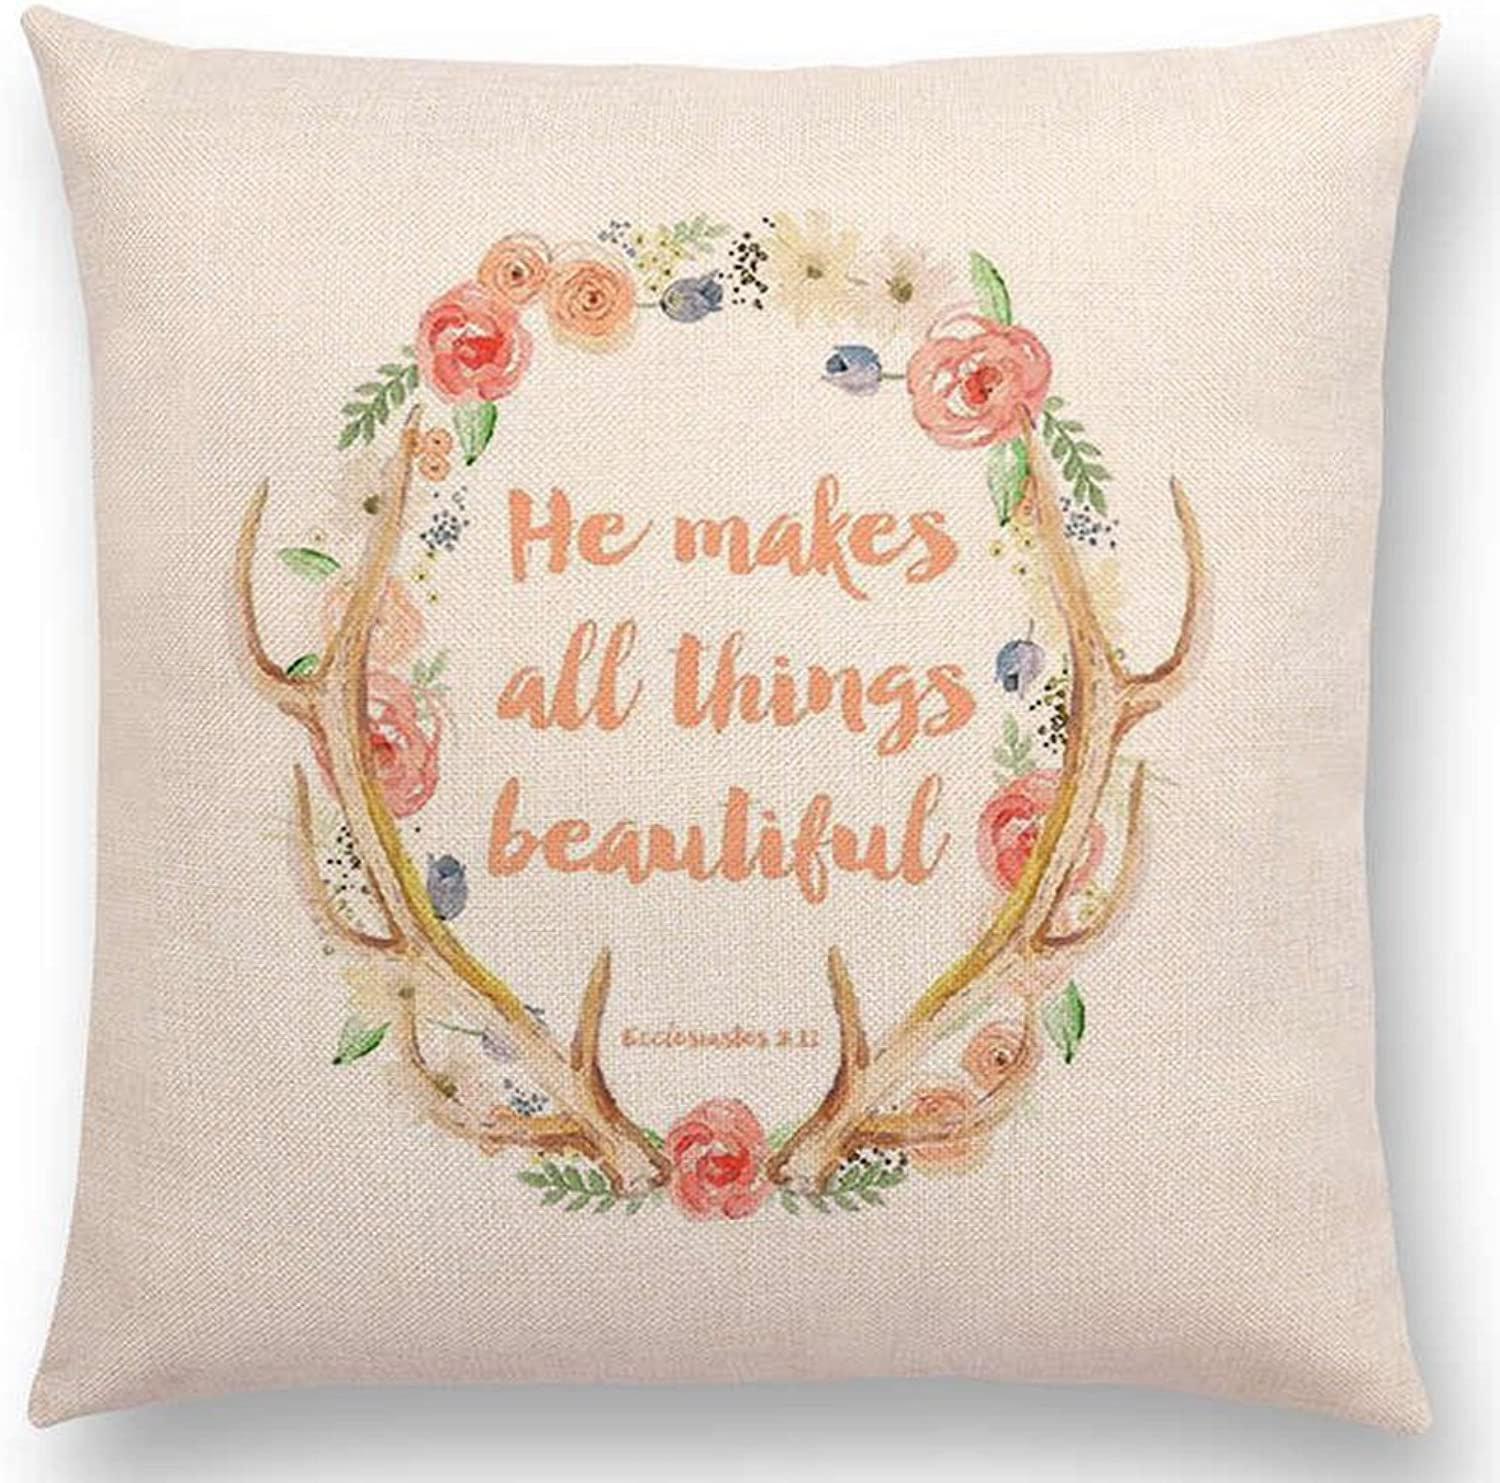 Aremazing Inspirational Quotes with Beautiful Flowers Cotton Linen Home Decor Pillowcase Throw Pillow Cushion Cover 18 x 18 Inches (He Make All Things Beautiful)